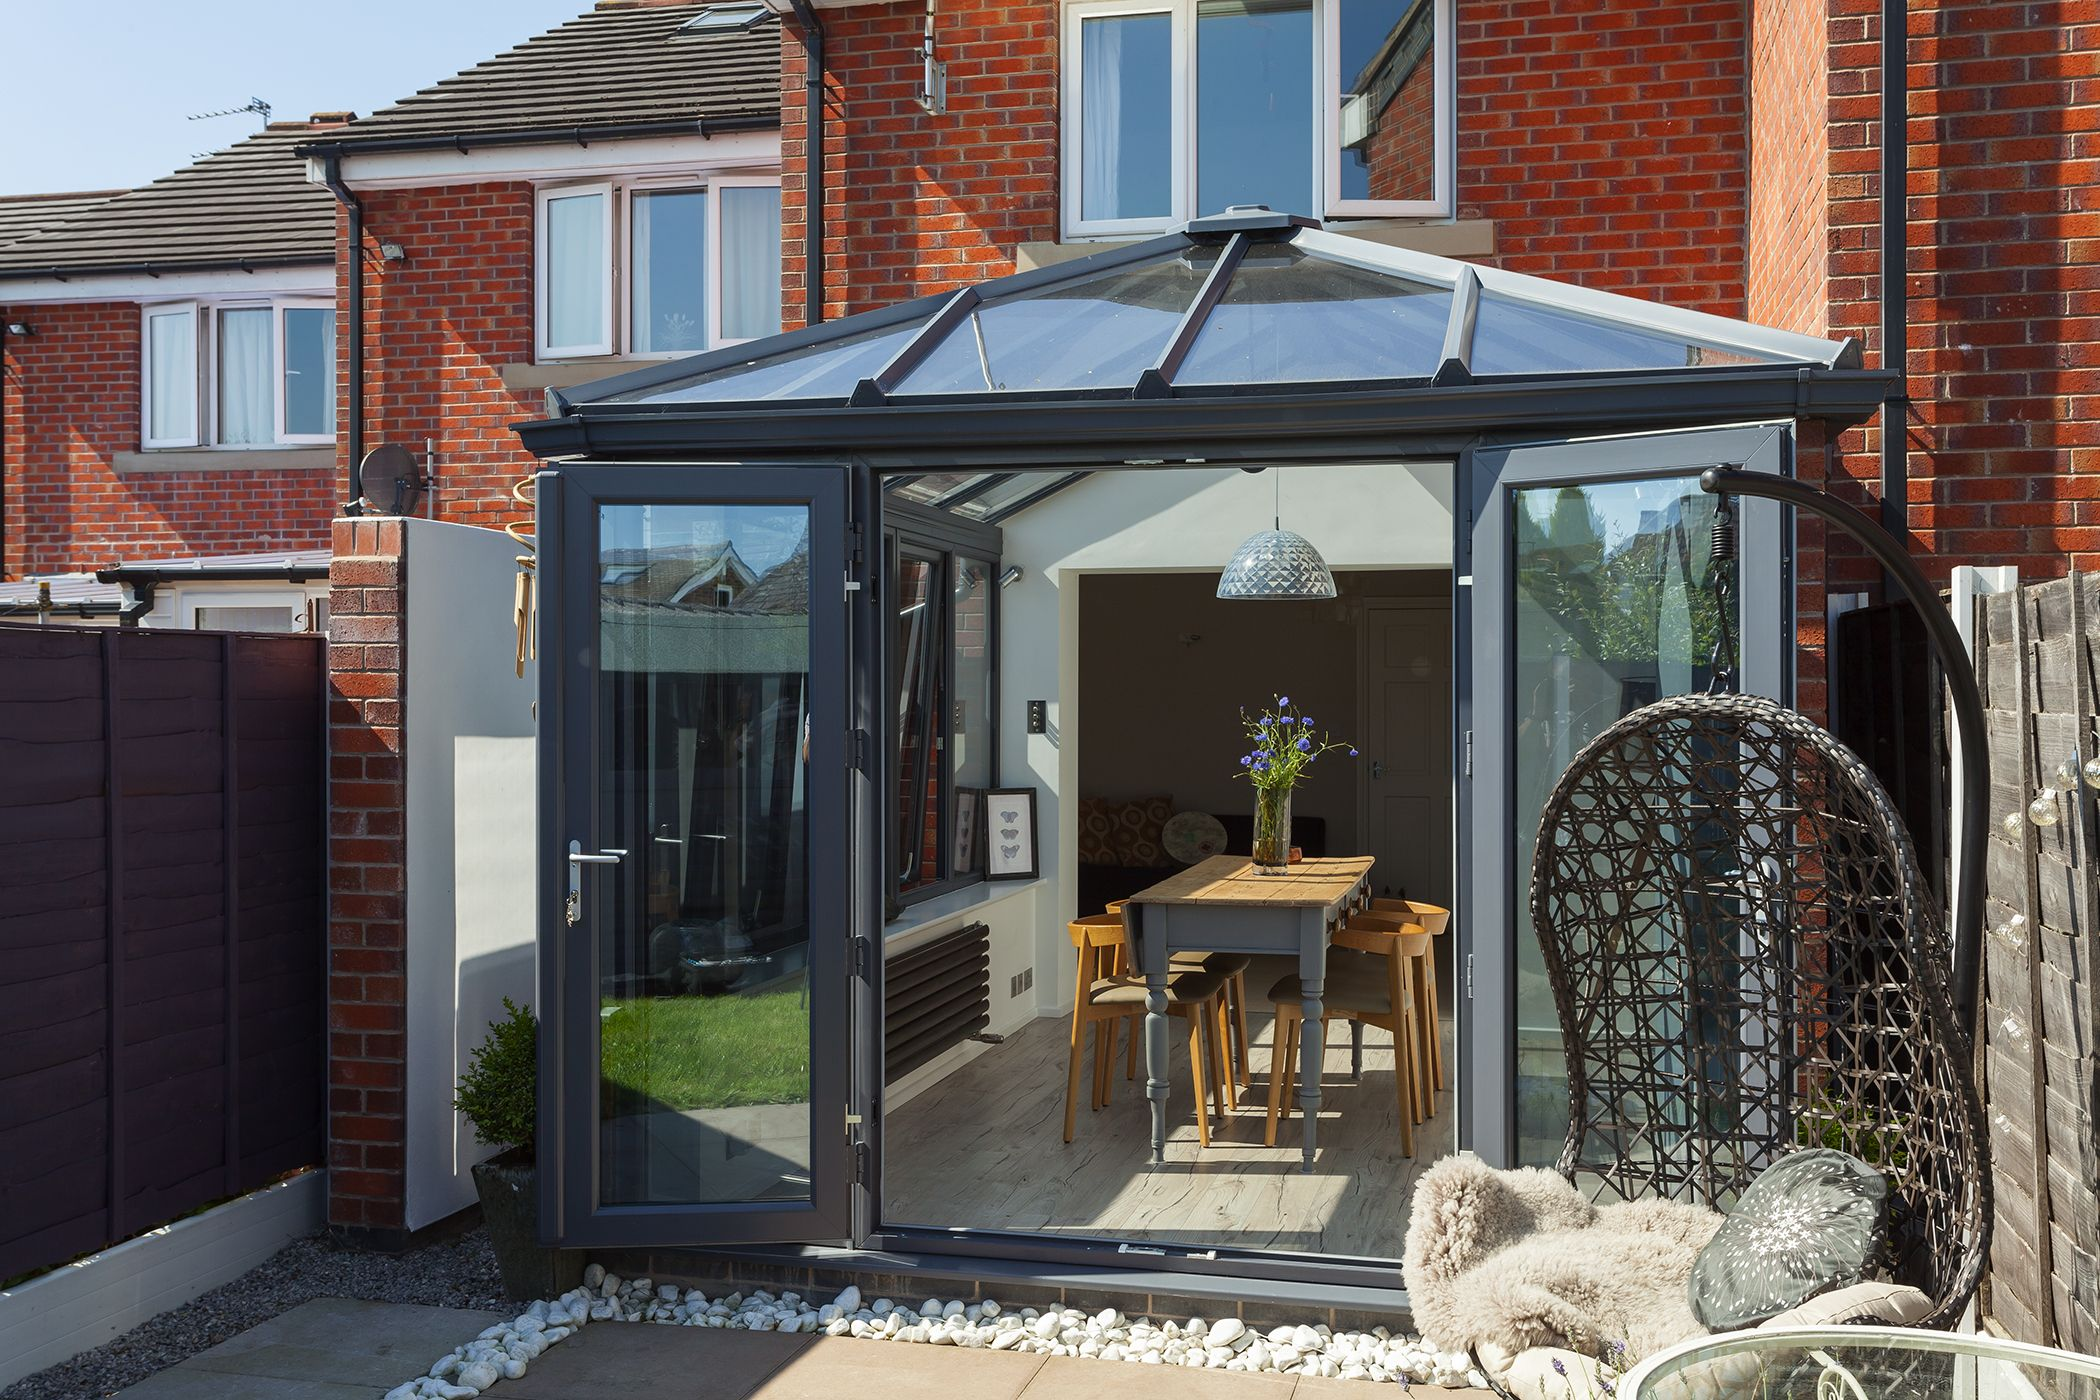 Conservatory Extension Conservatory Design Conservatory Decor Small Conservatory